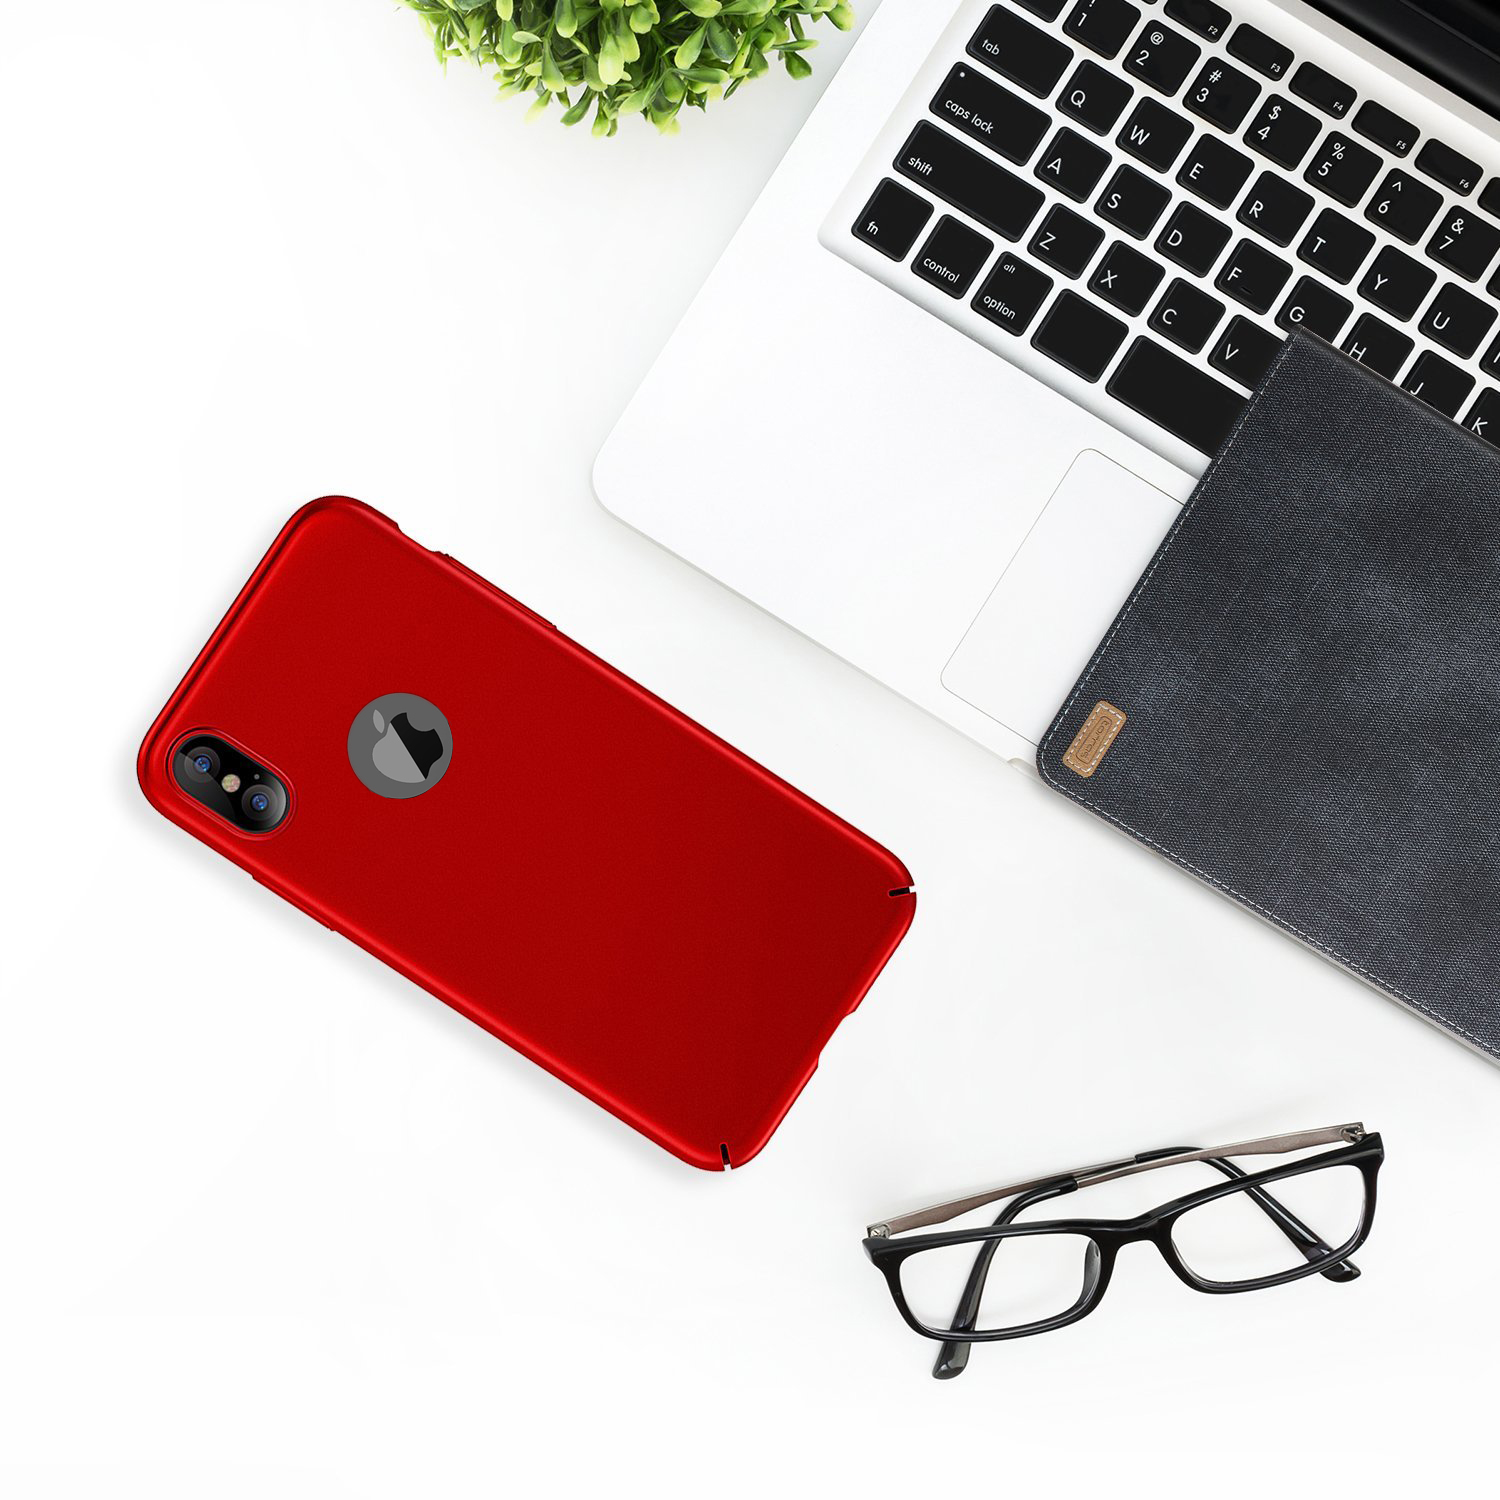 Thin-Slim-Hard-Case-Tempered-Glass-Cover-For-Apple-iPhone-X-XS-XR-Max-10-8-7-6s miniatuur 32